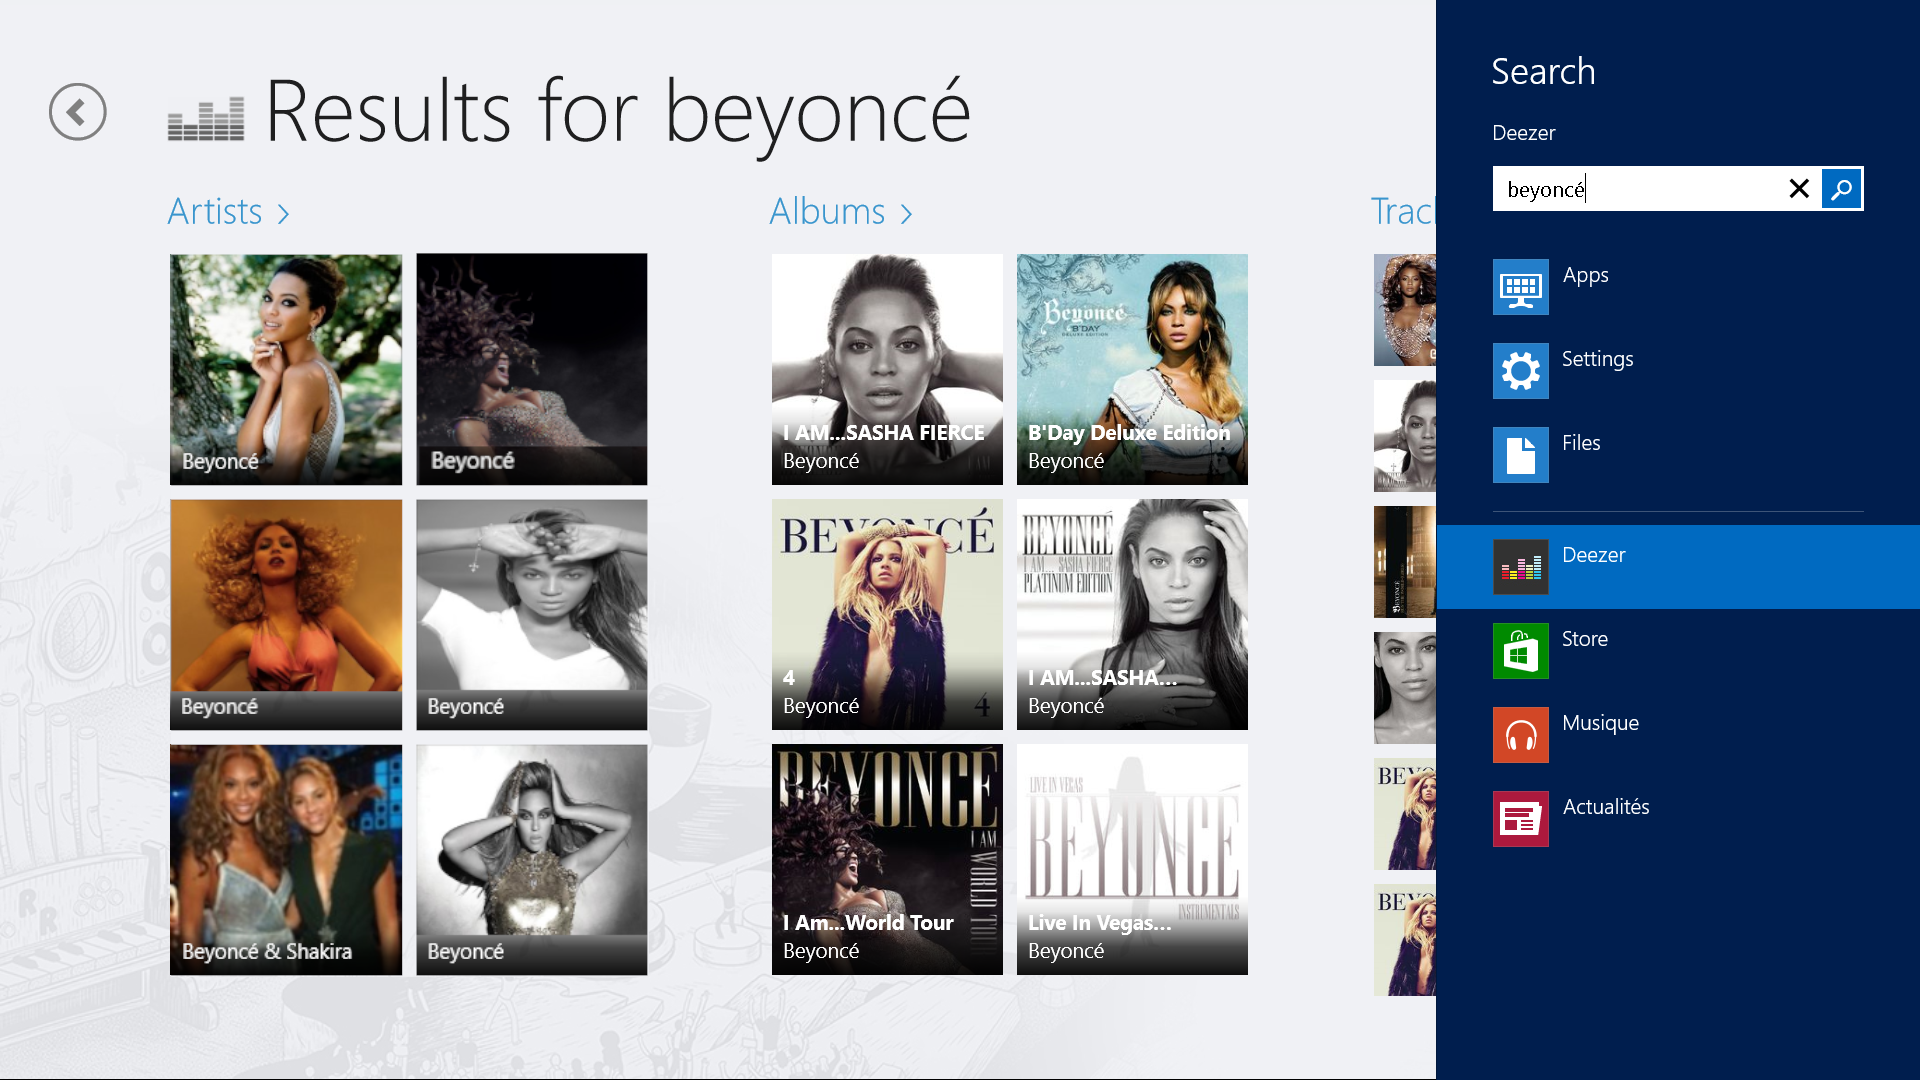 Deezer desembarca en Windows 8 cargado de funciones exclusivas